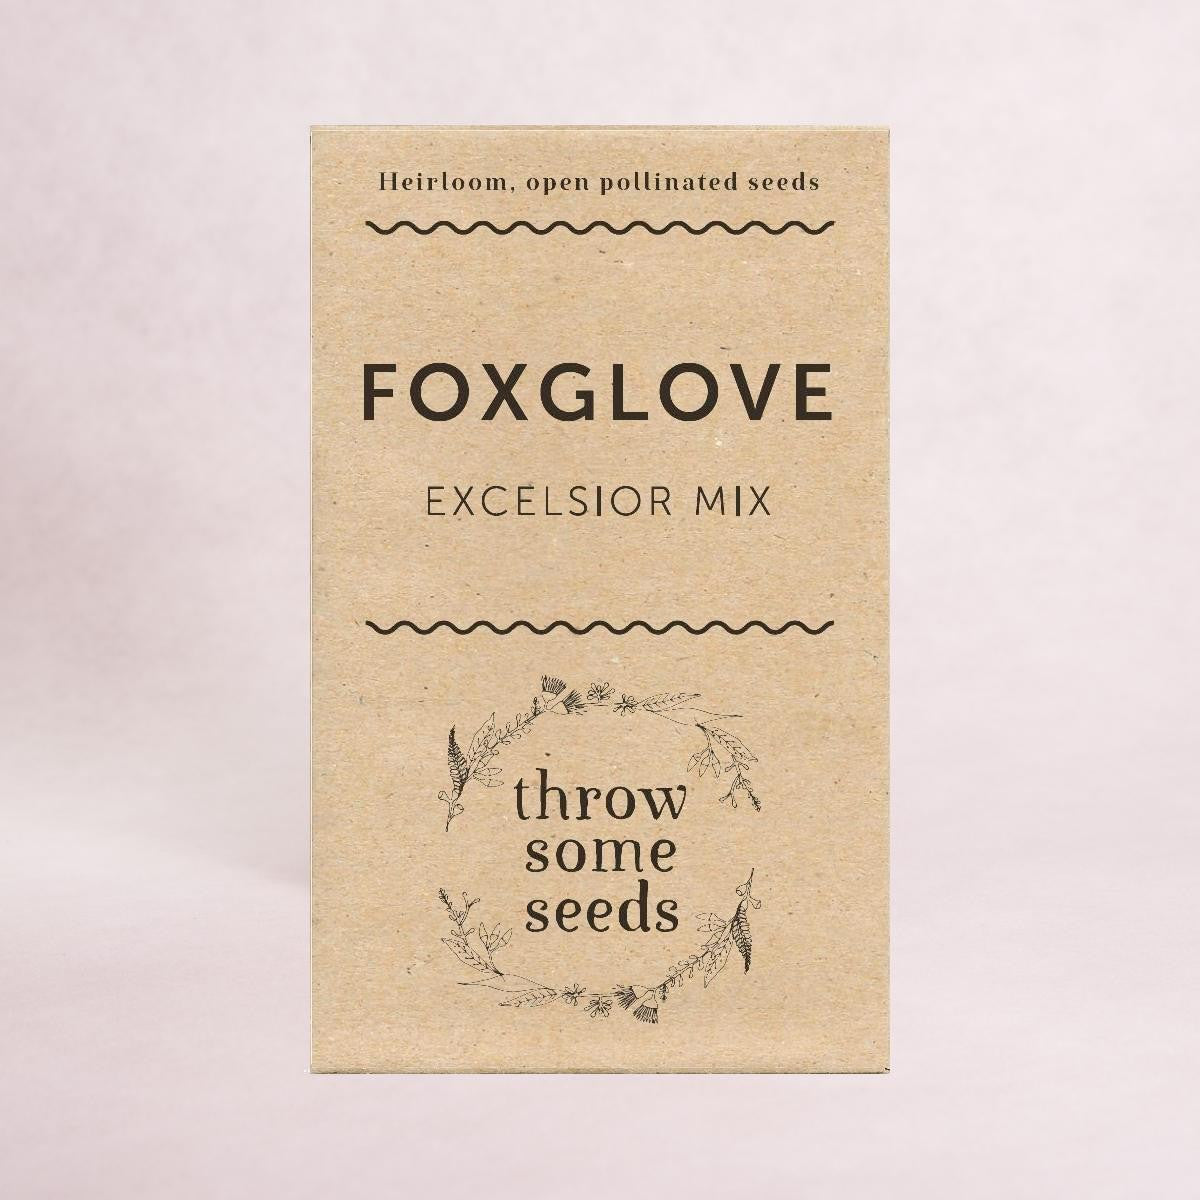 Foxglove (Excelsior mix) - Heirloom Seeds - Throw Some Seeds